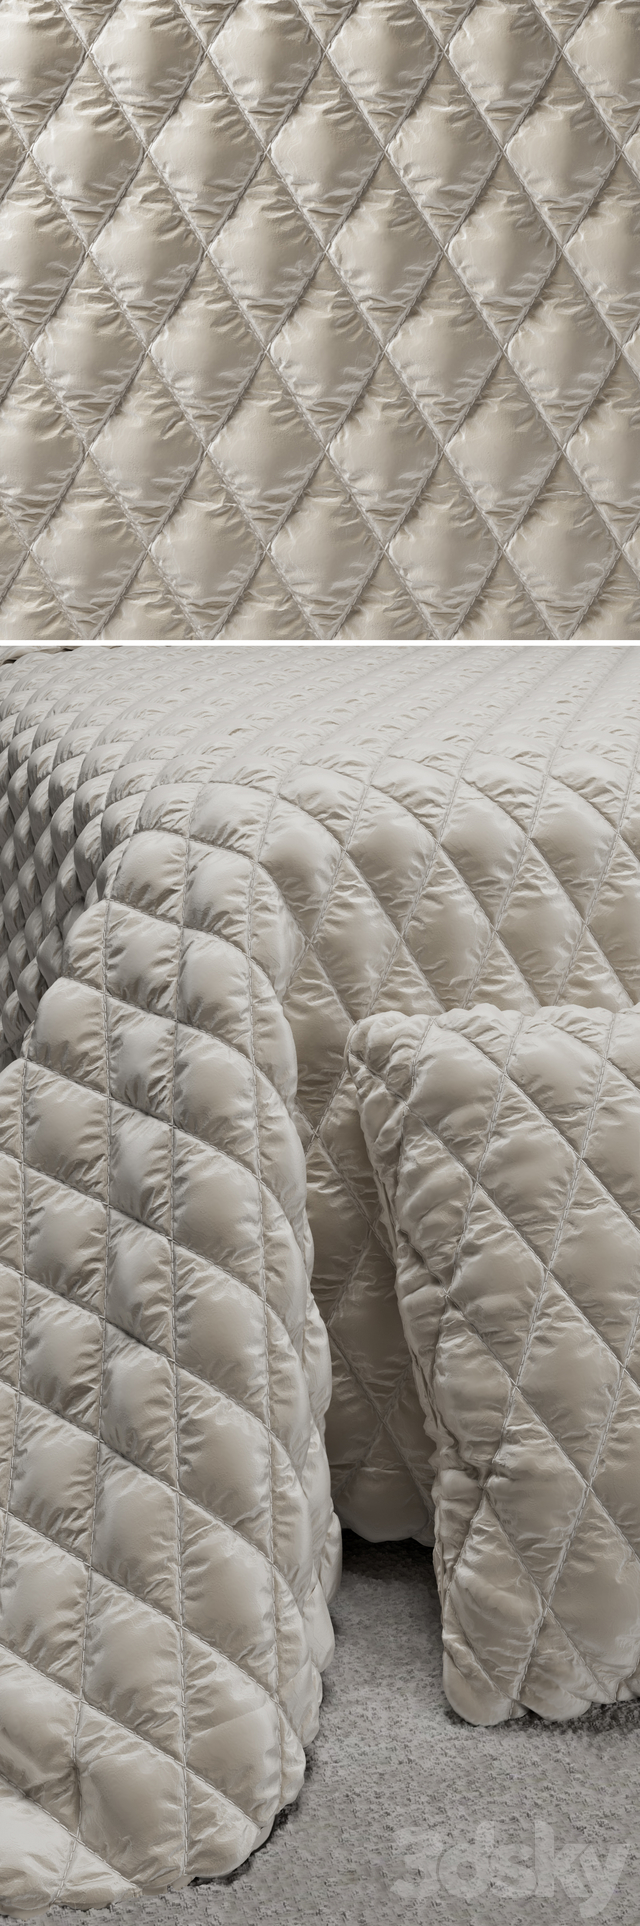 Material Quilted bedspread